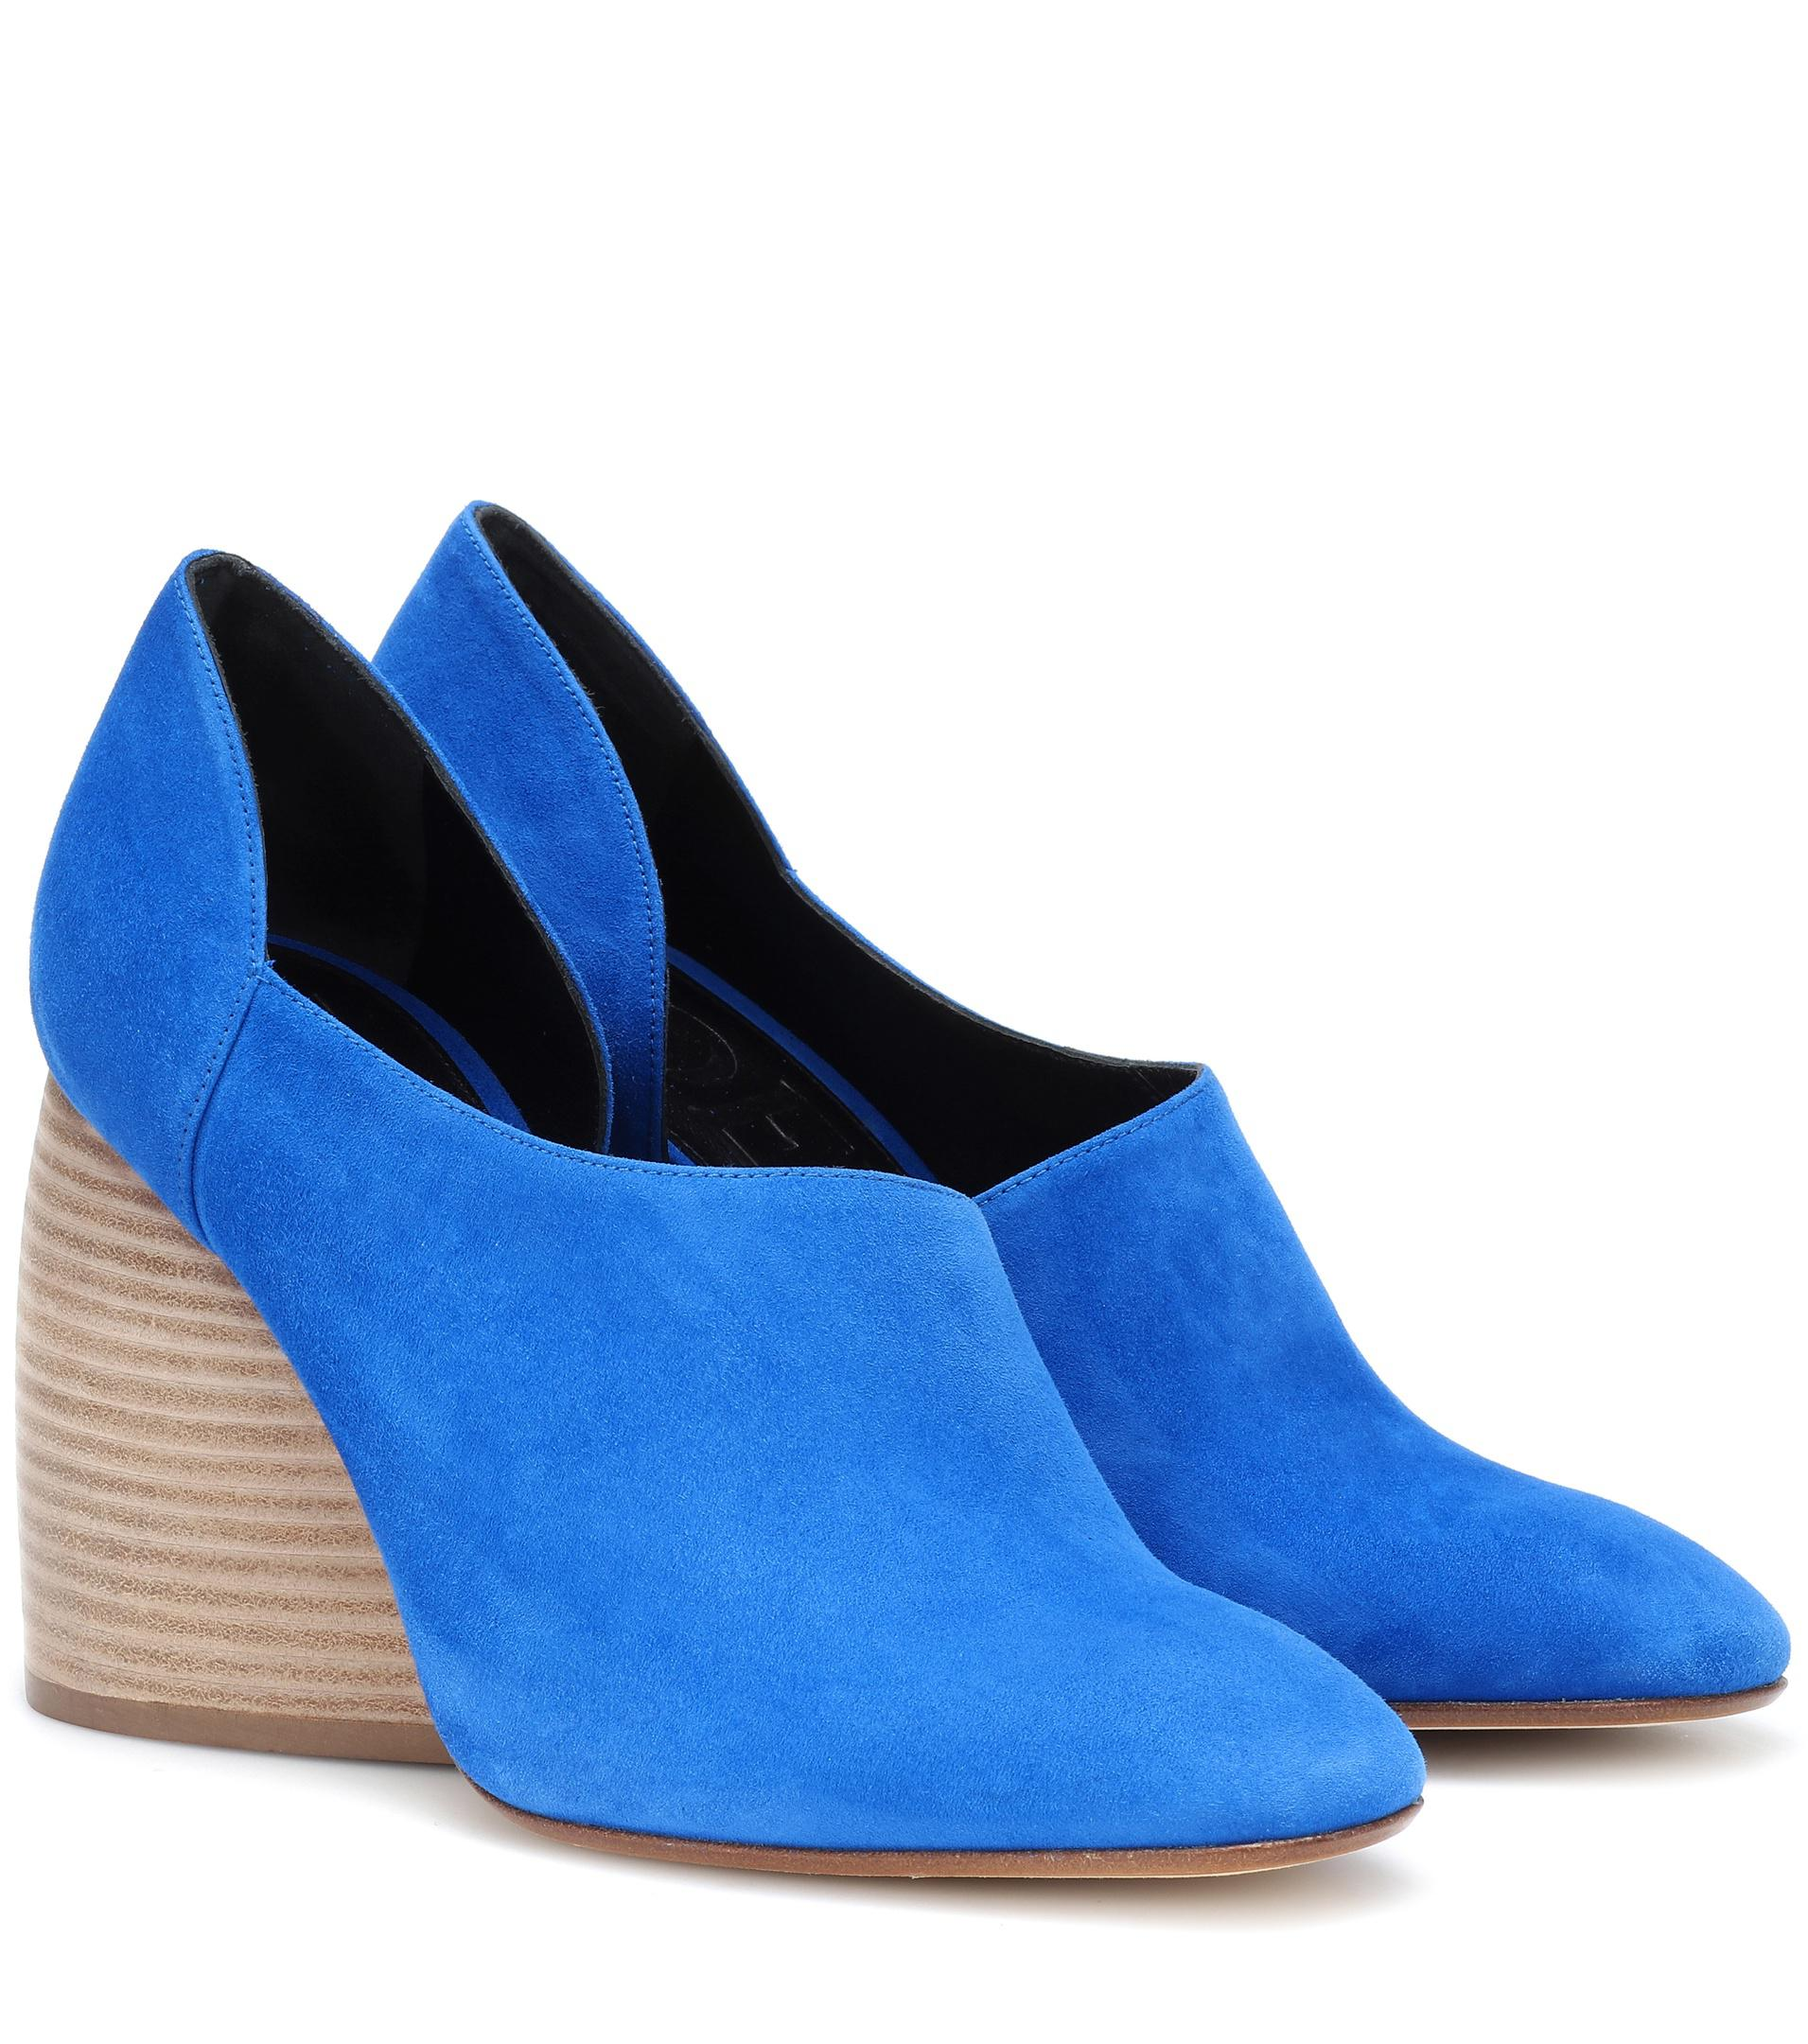 buy cheap deals cheap fashionable Loewe Flex Loafer 90 leather pumps outlet clearance sale fashion Style HiLsPzhk